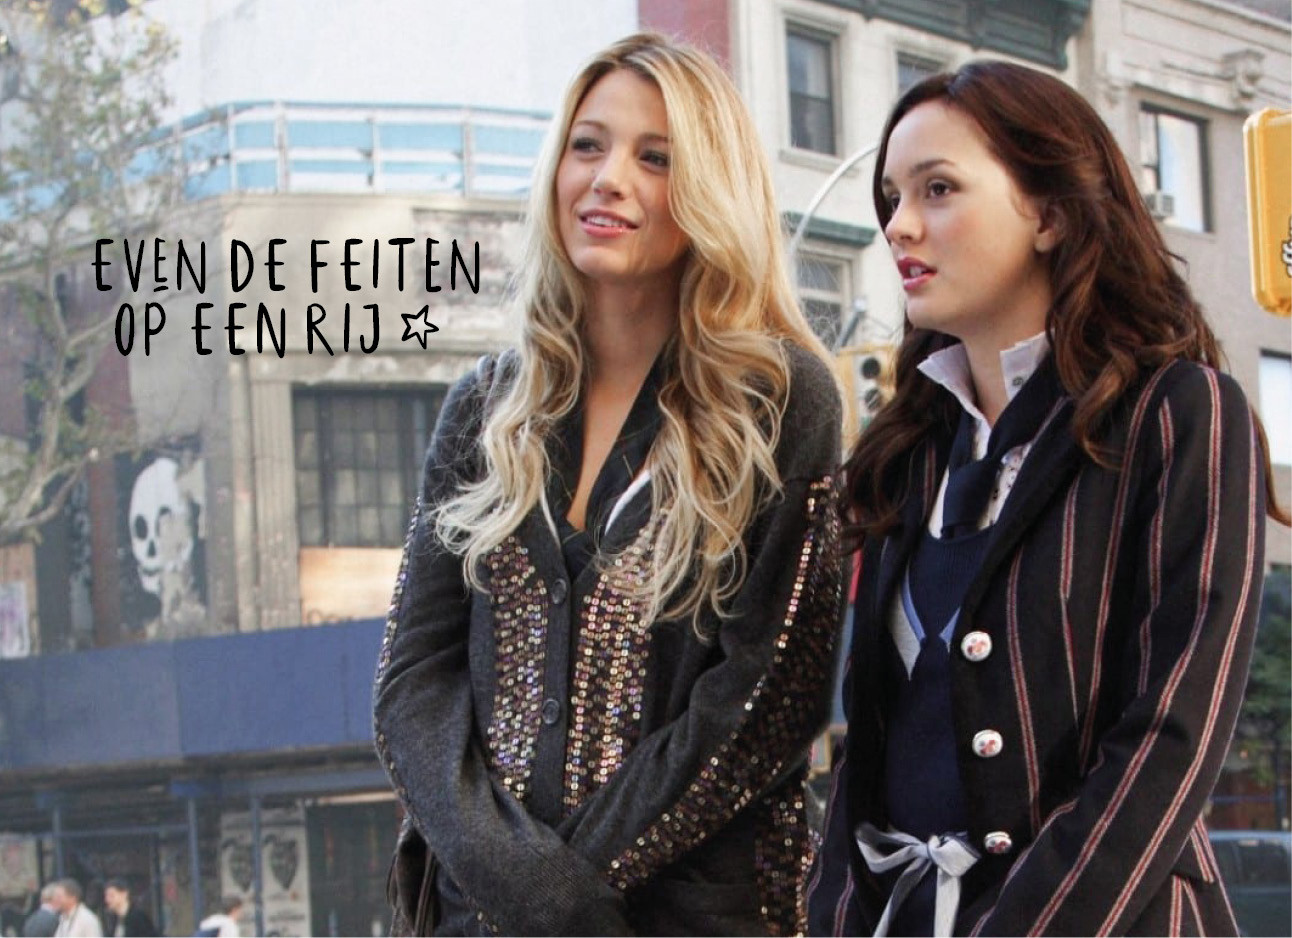 Gossip girl blair en Serena